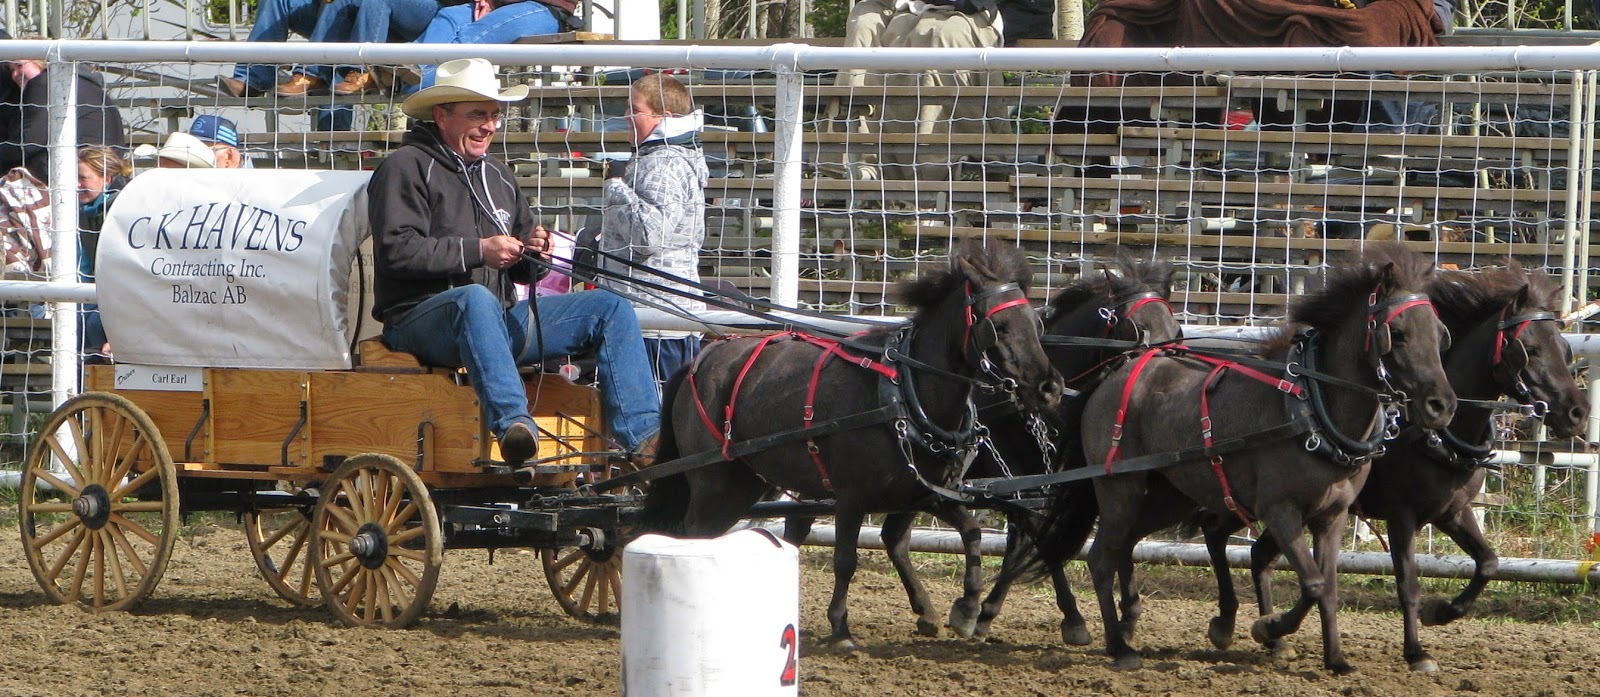 Animals, Animals Race, Chuck Wagon Championships, Chuckwagon Race, Cowboys, Horse Race, Miniature Horses, Oklahoma, Race, Sports, World Miniature Championships,